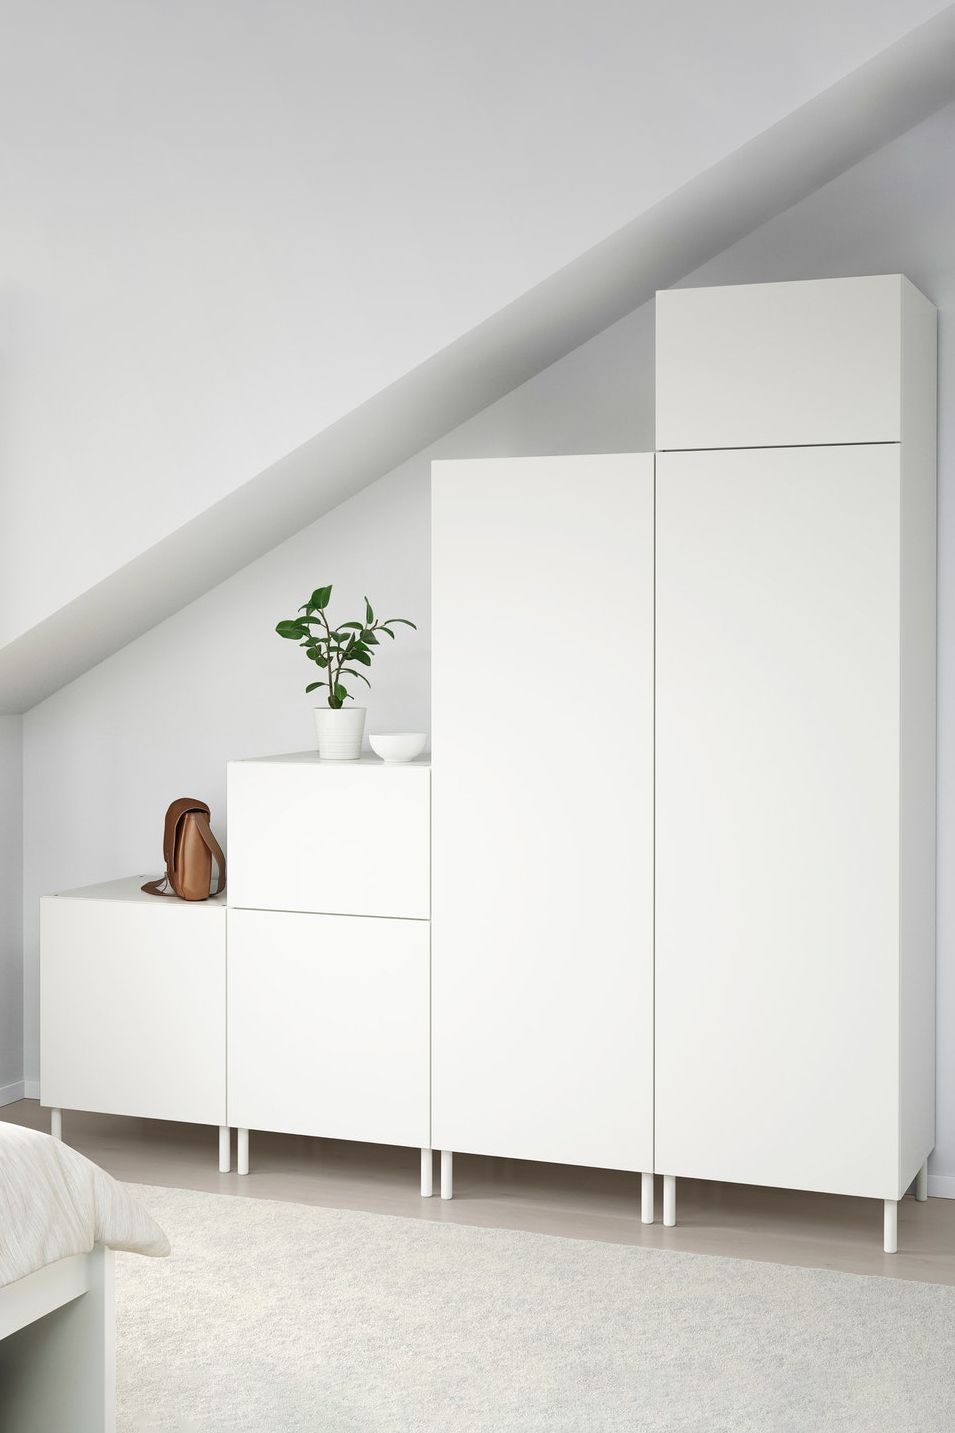 Wardrobe Under Sloping Ceilings With Platsa System In 2020 Mit